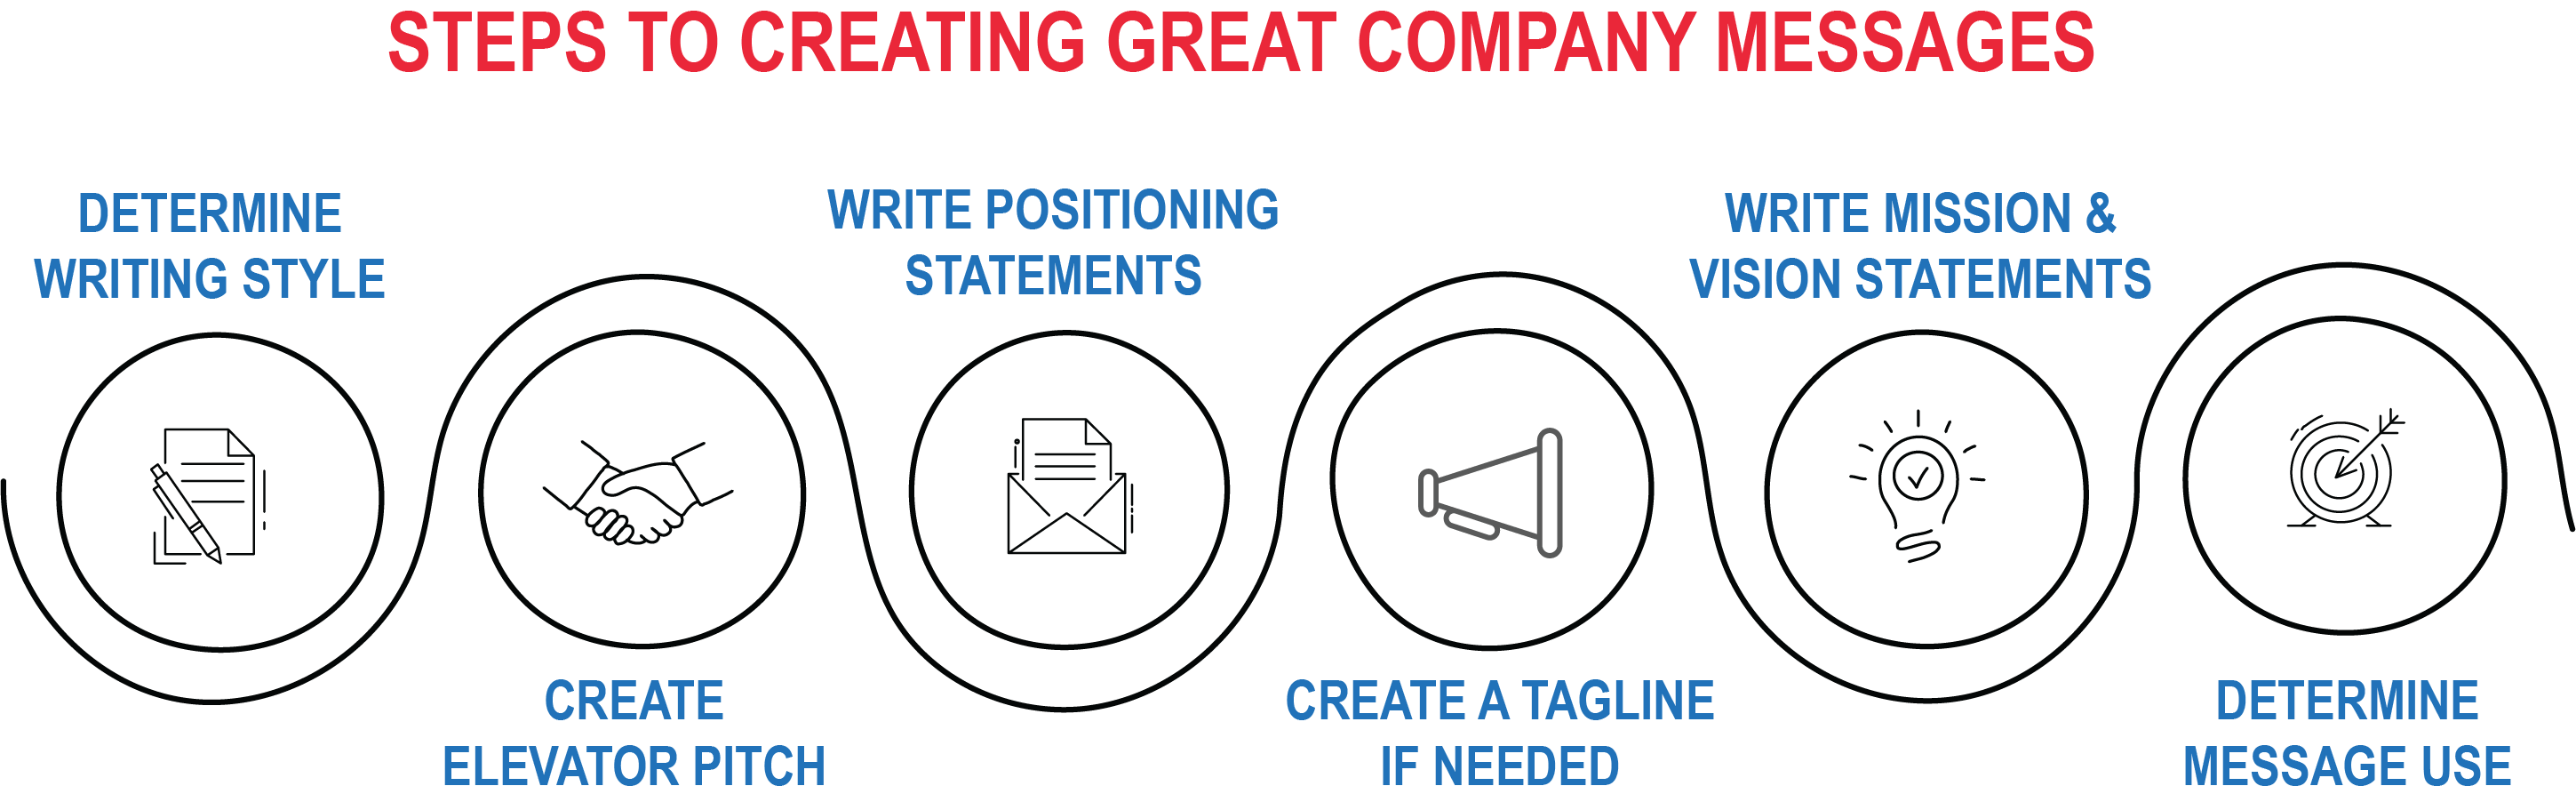 Steps to Creating Great Company Messages